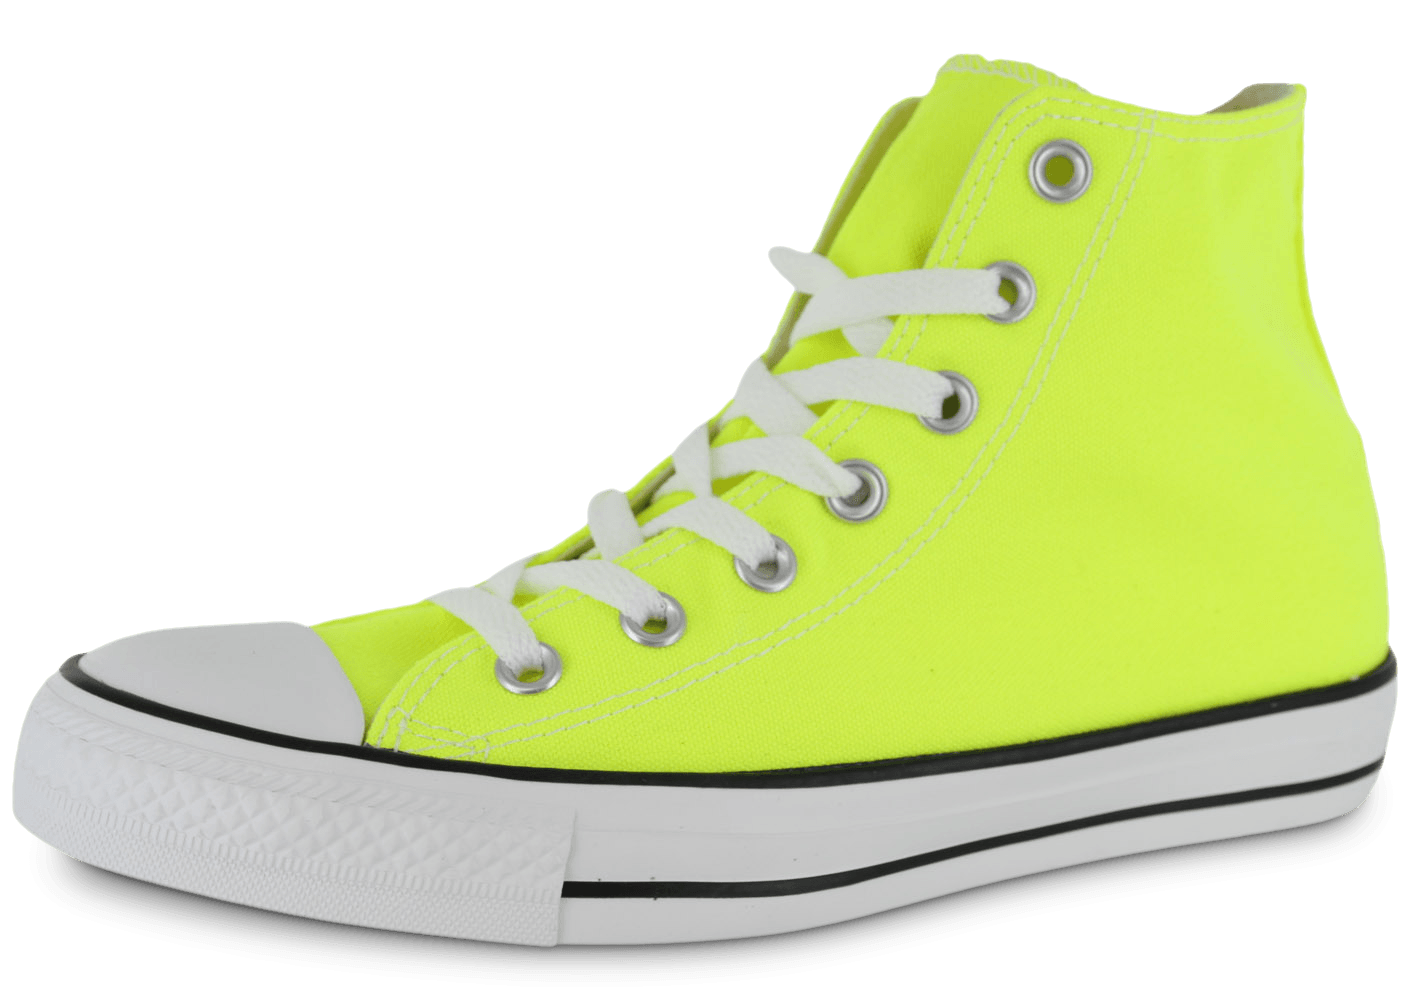 Converse Chuck Taylor All Star jaune fluo